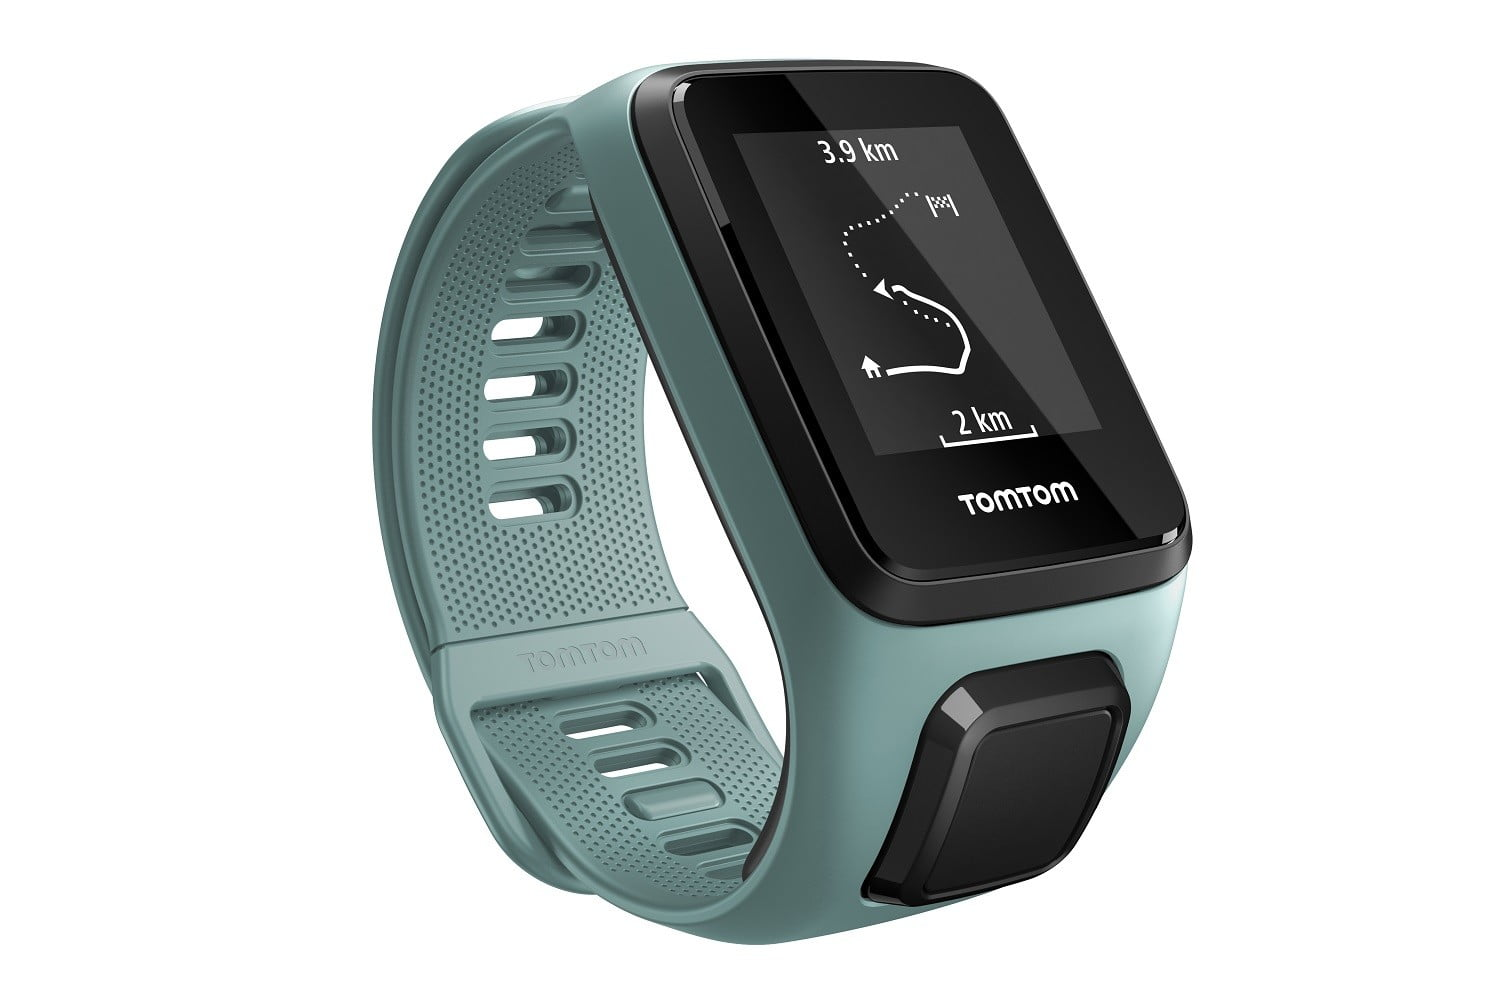 tomtom unveils the spark 3 touch and the adventurer digital trends. Black Bedroom Furniture Sets. Home Design Ideas